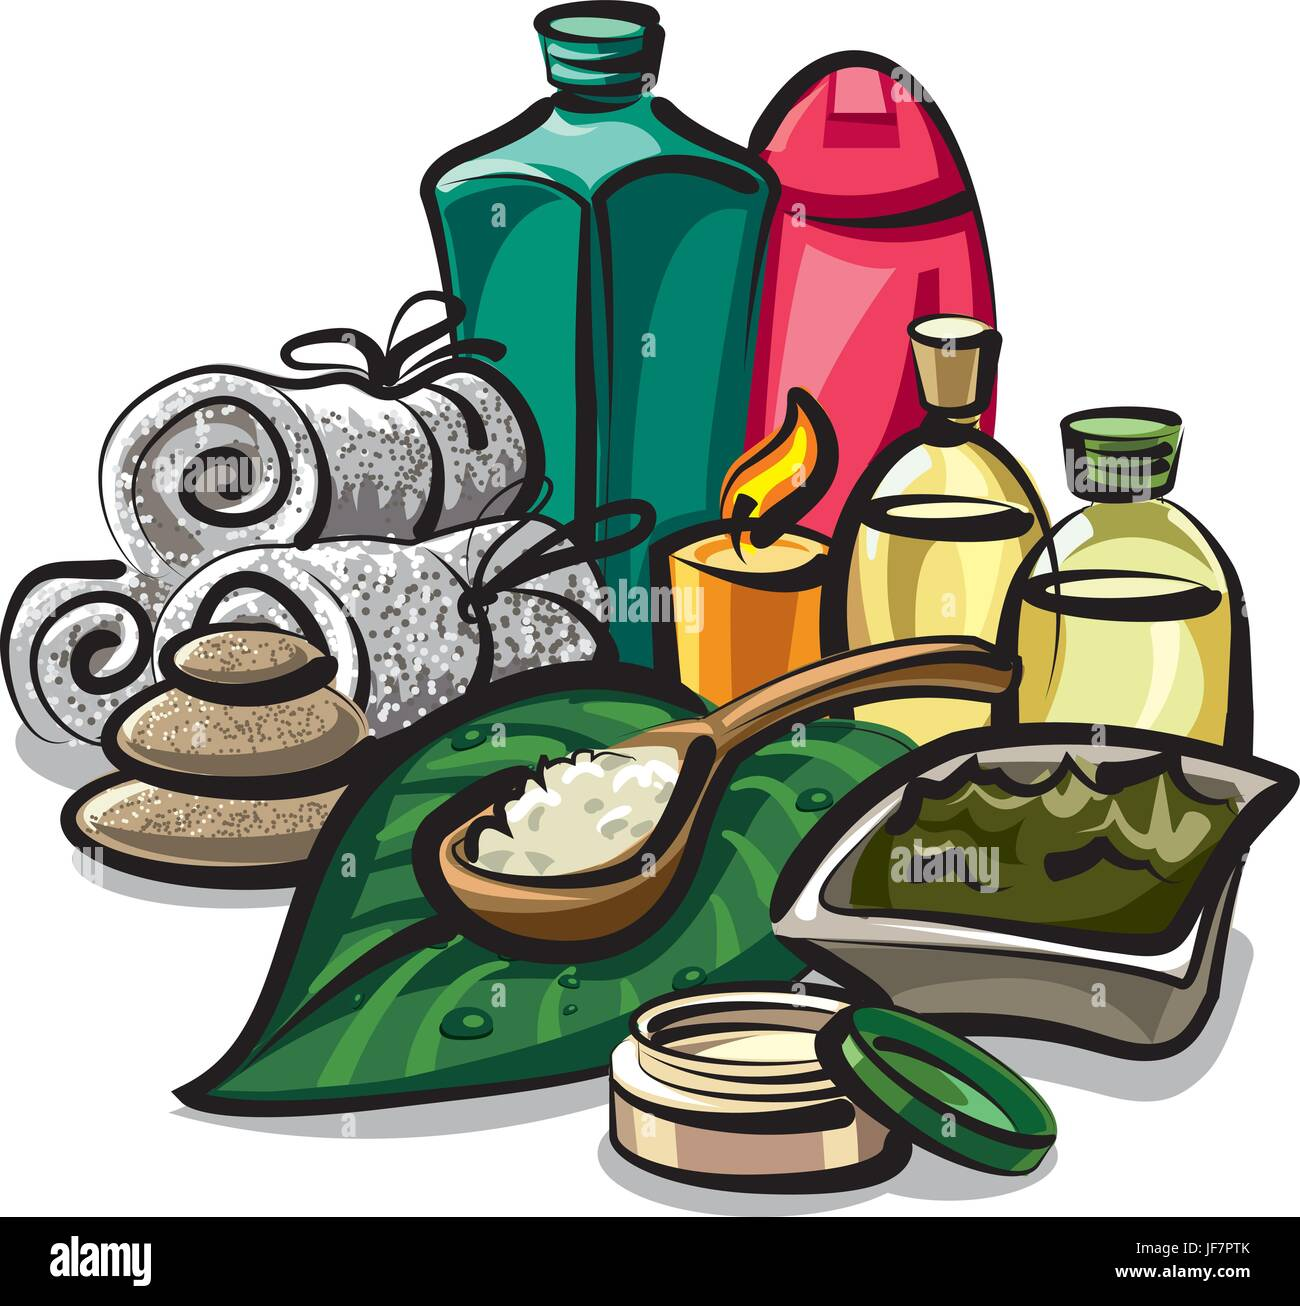 Illustration Of Collection Of Natural Spa Products For Body Care Stock Vector Image Art Alamy